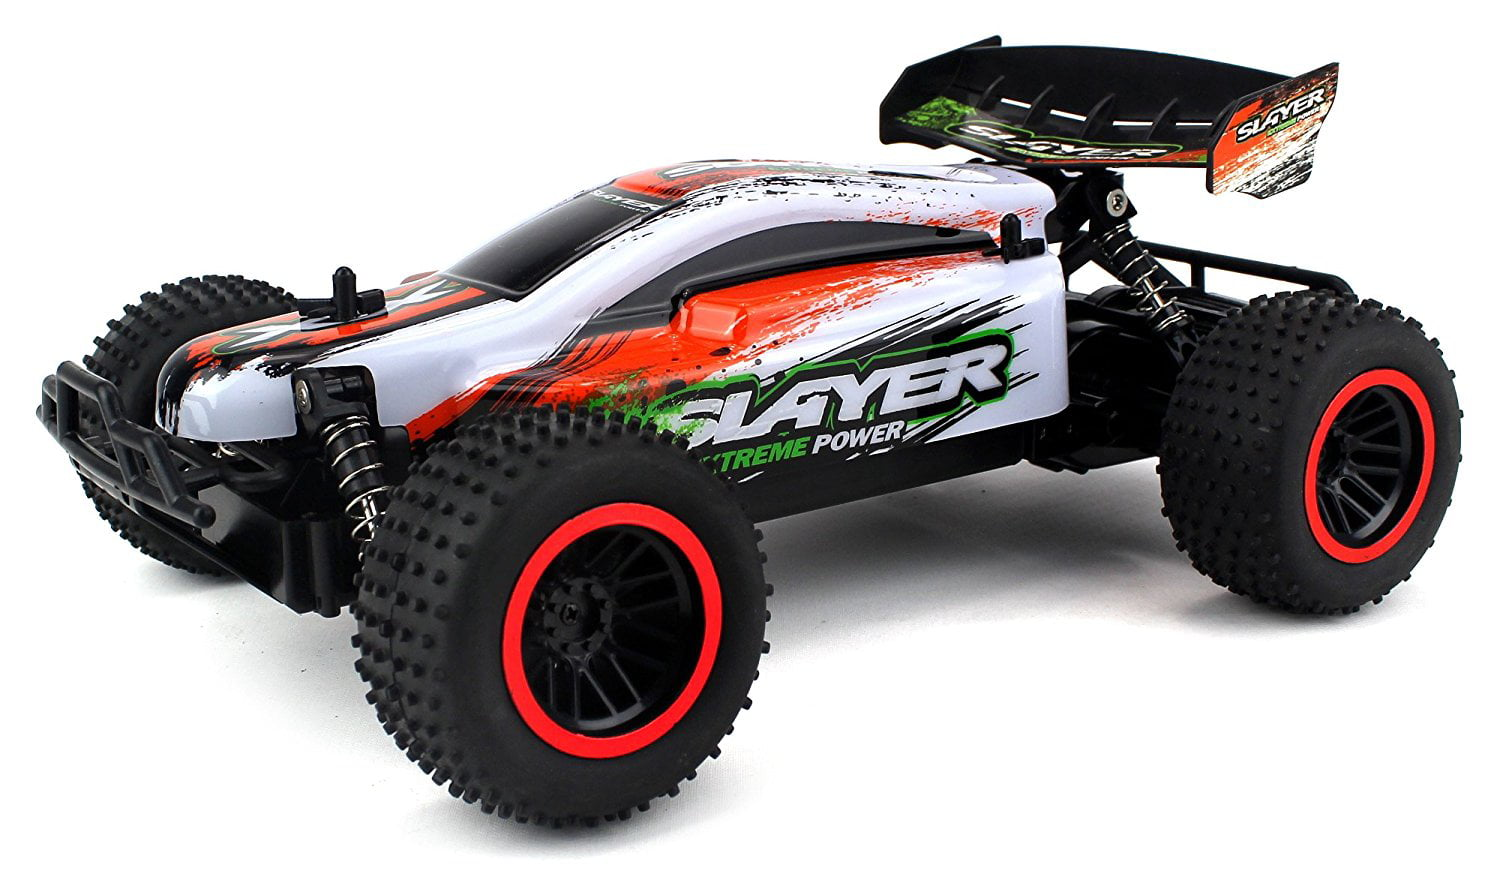 Baja Slayer Remote Control RC Buggy Car 2.4 GHz PRO System 1:12 Scale Size RTR w  Working Suspension, Spring... by Velocity Toys